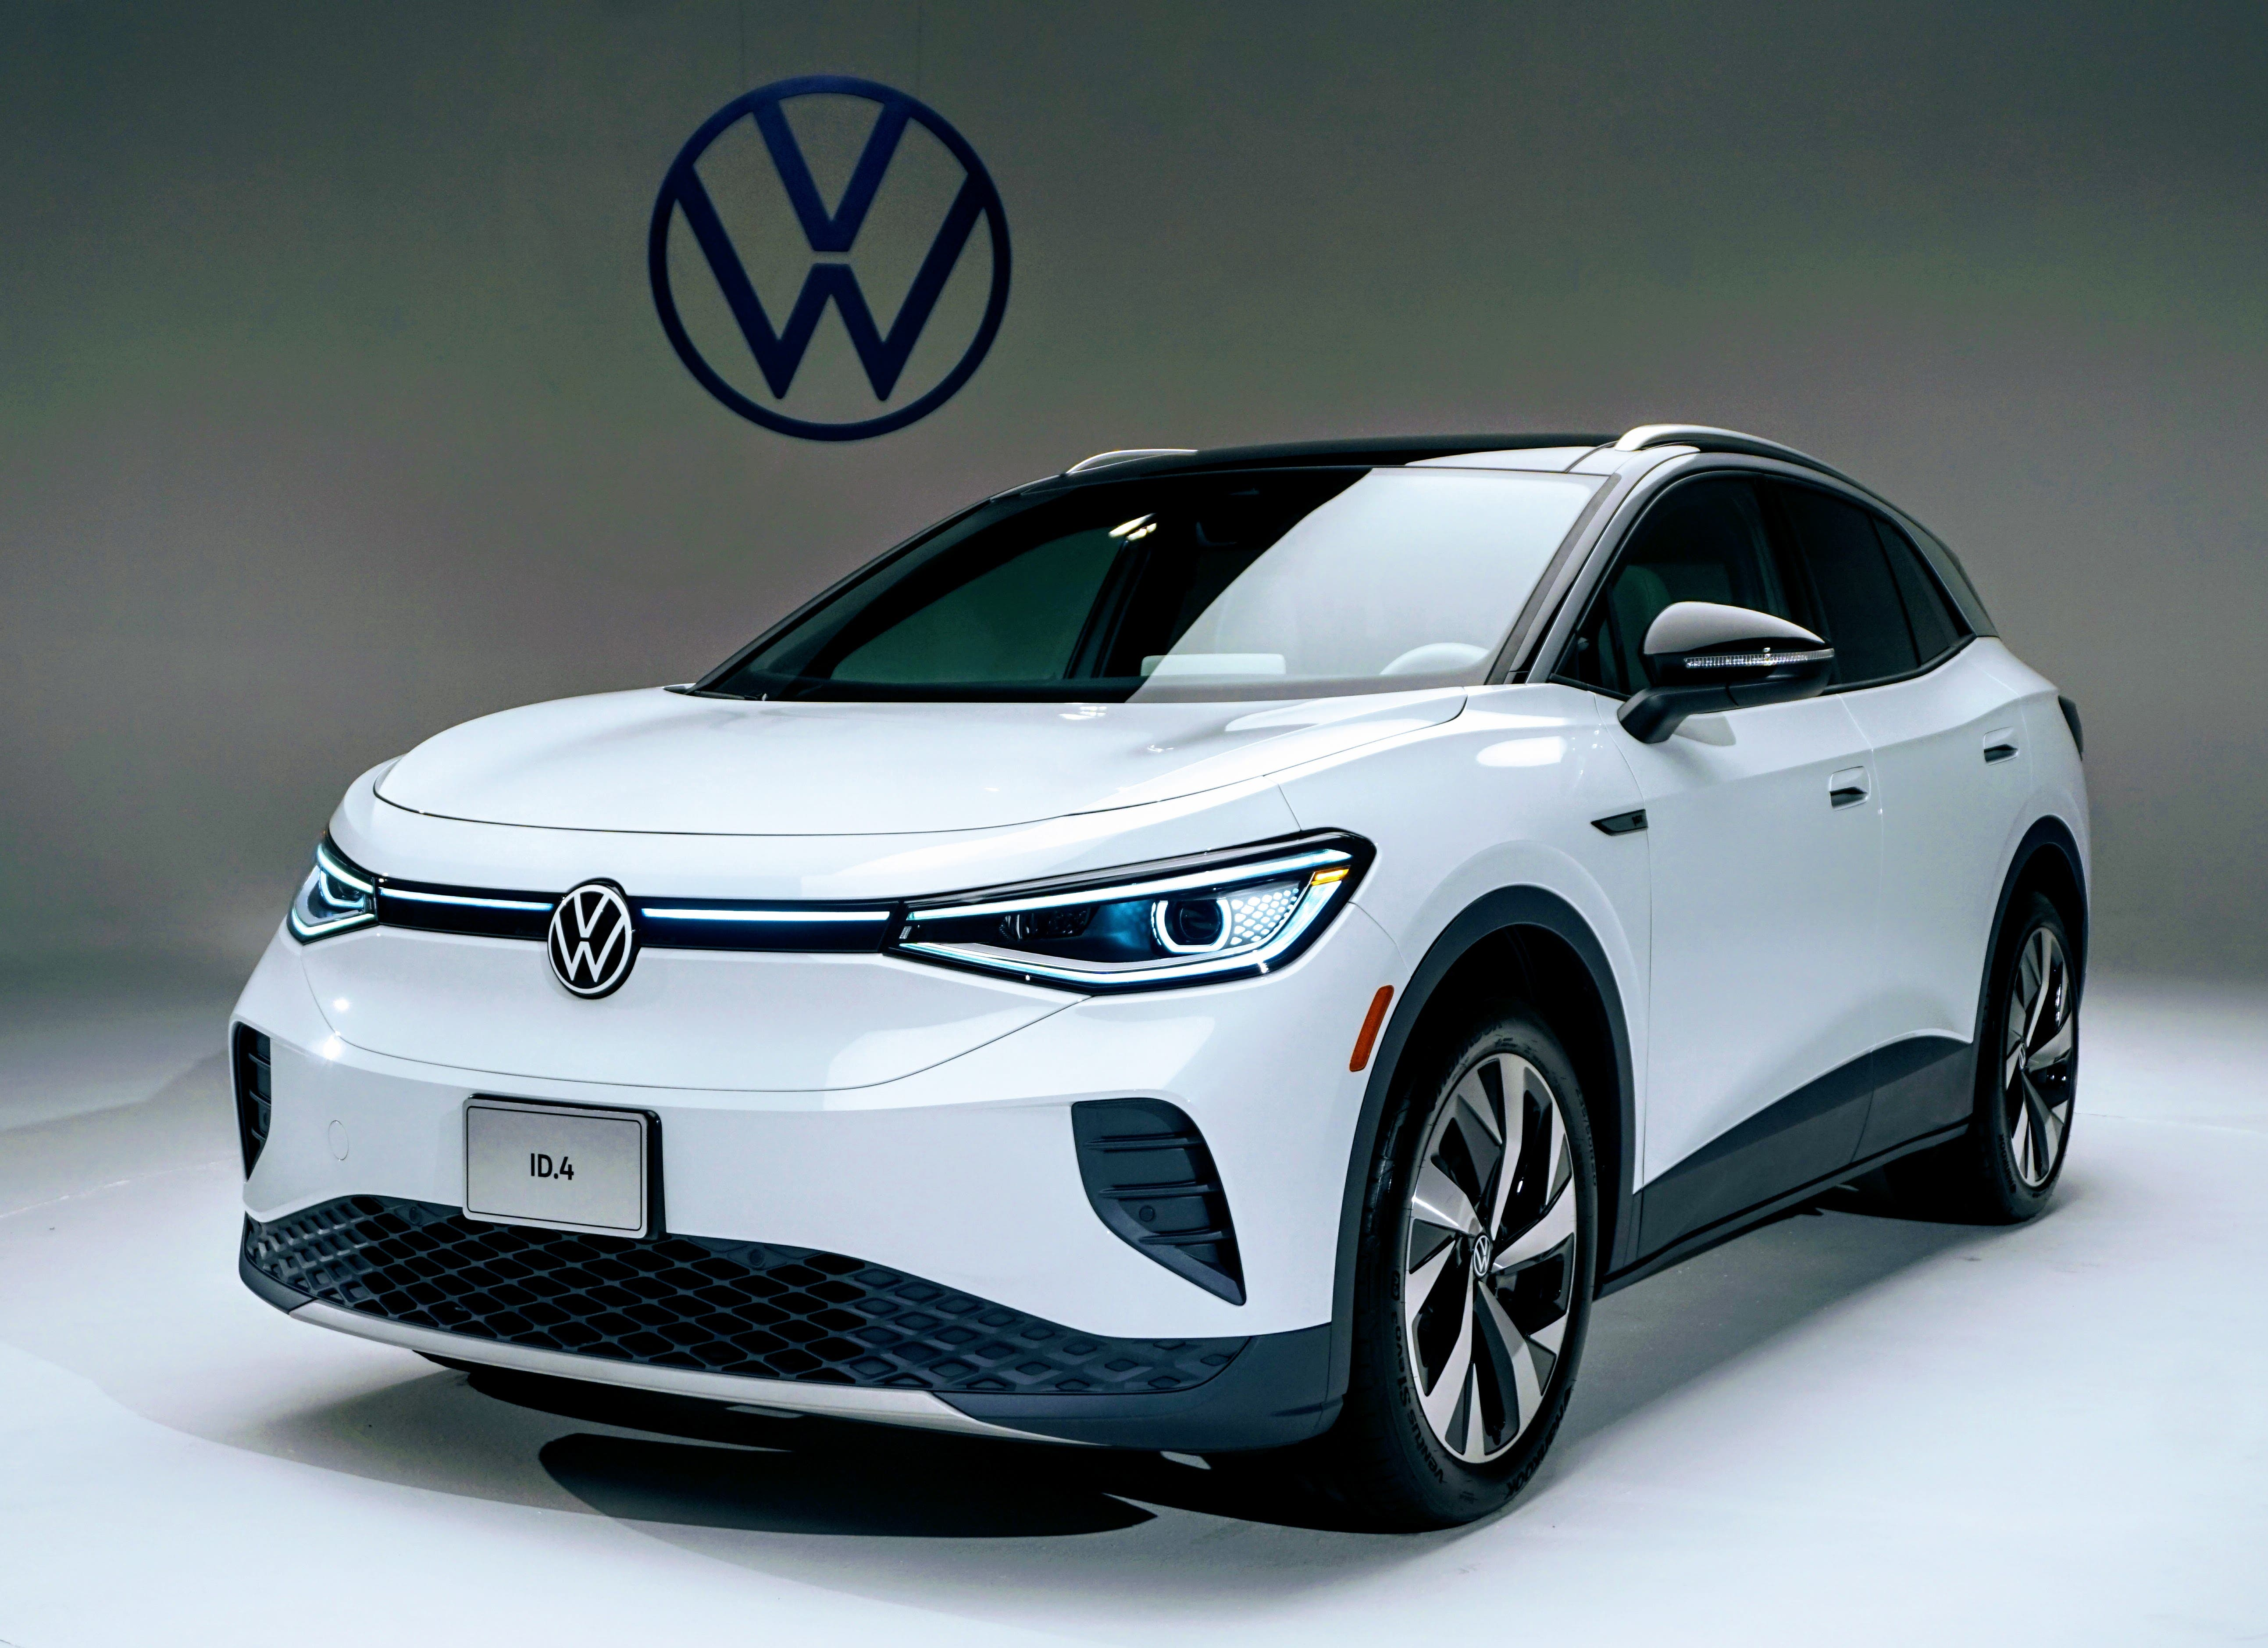 The fully electric Volkswagen ID.4